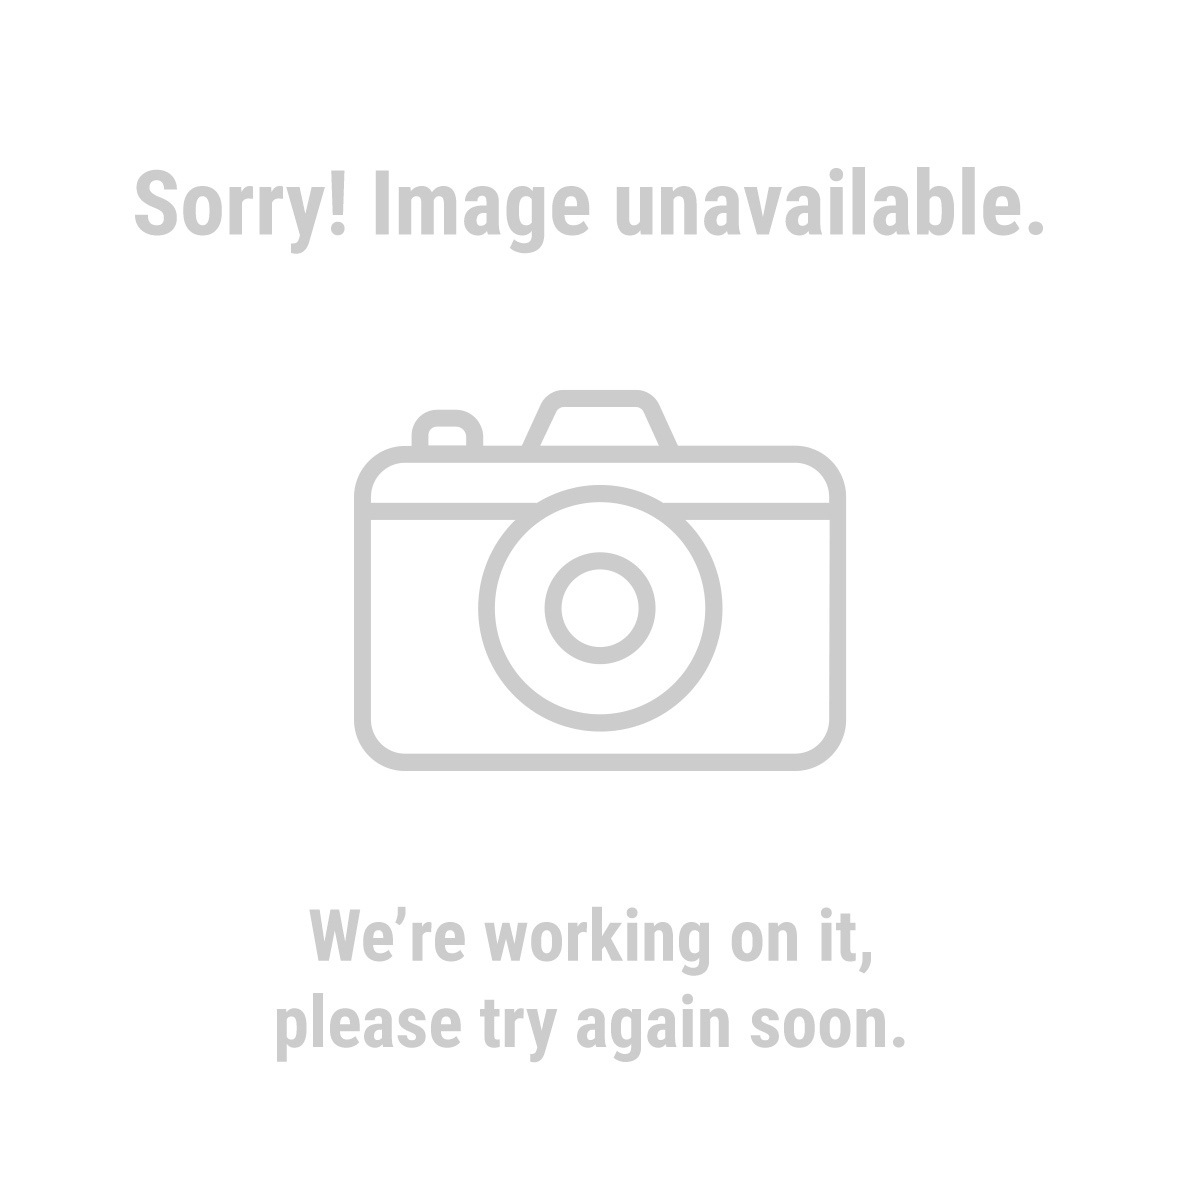 Cen-Tech 69659 1200 Watt Continuous/2400 Watt Peak Power Inverter